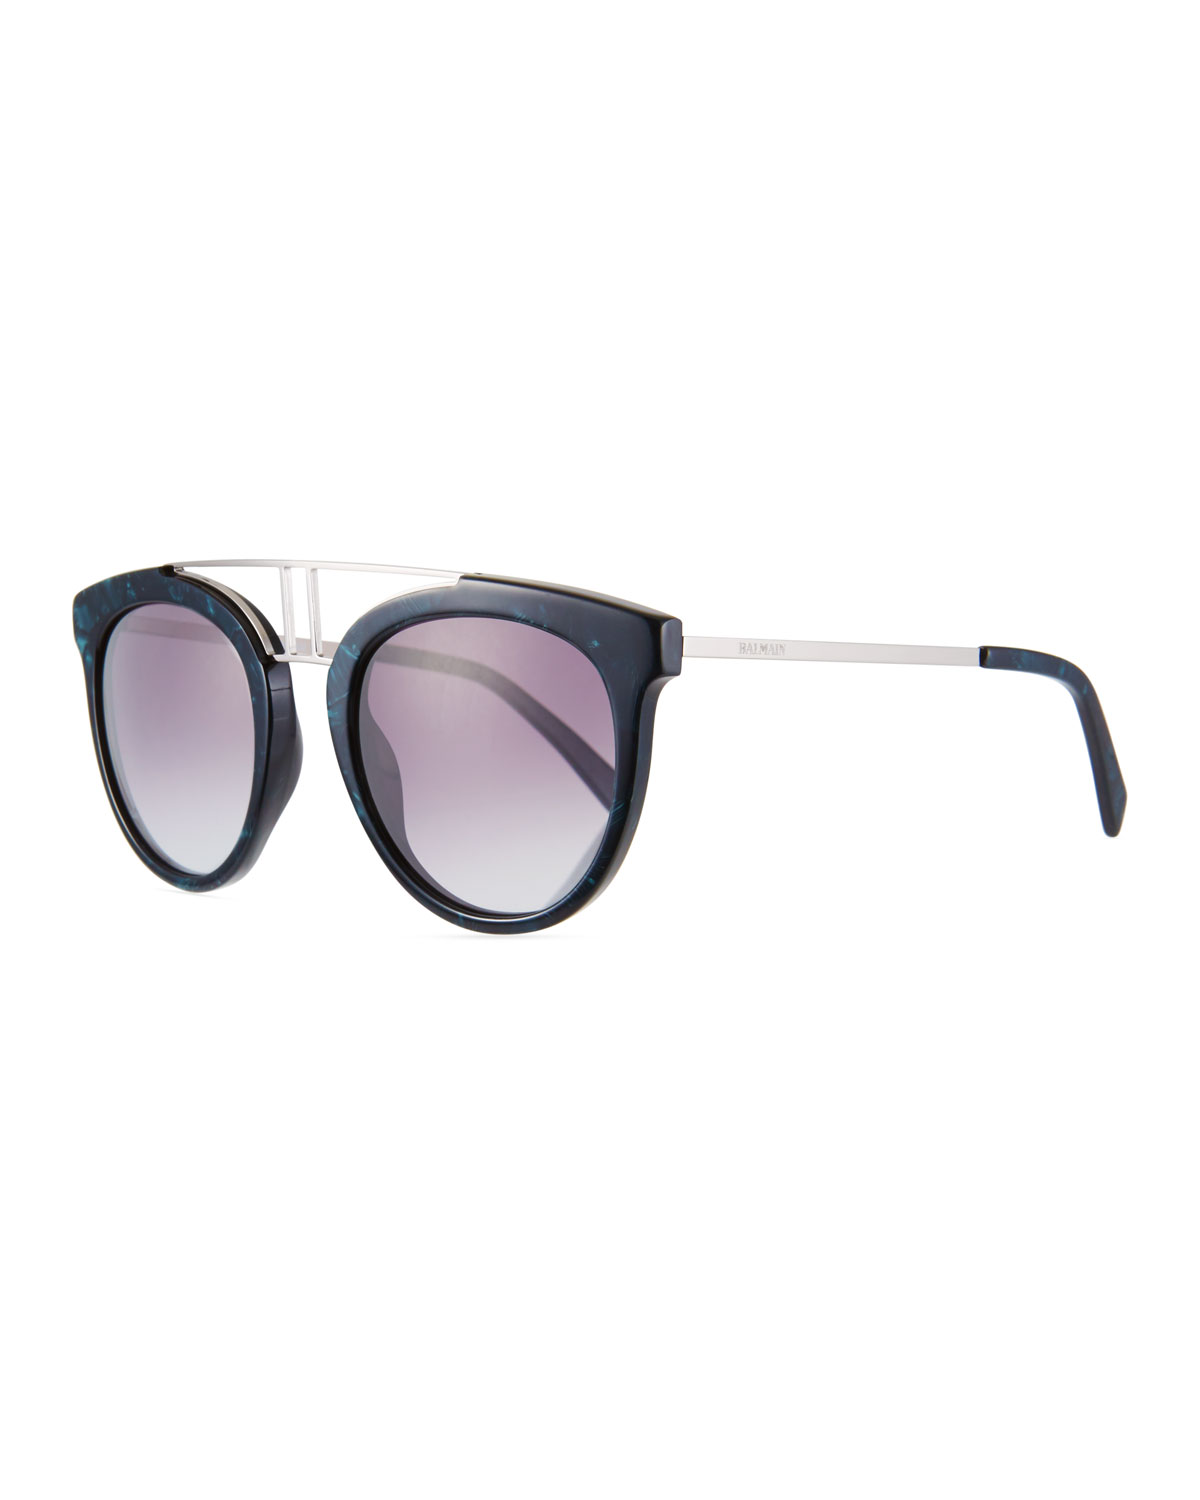 Round Gradient Acetate & Metal Double-Bridge Sunglasses